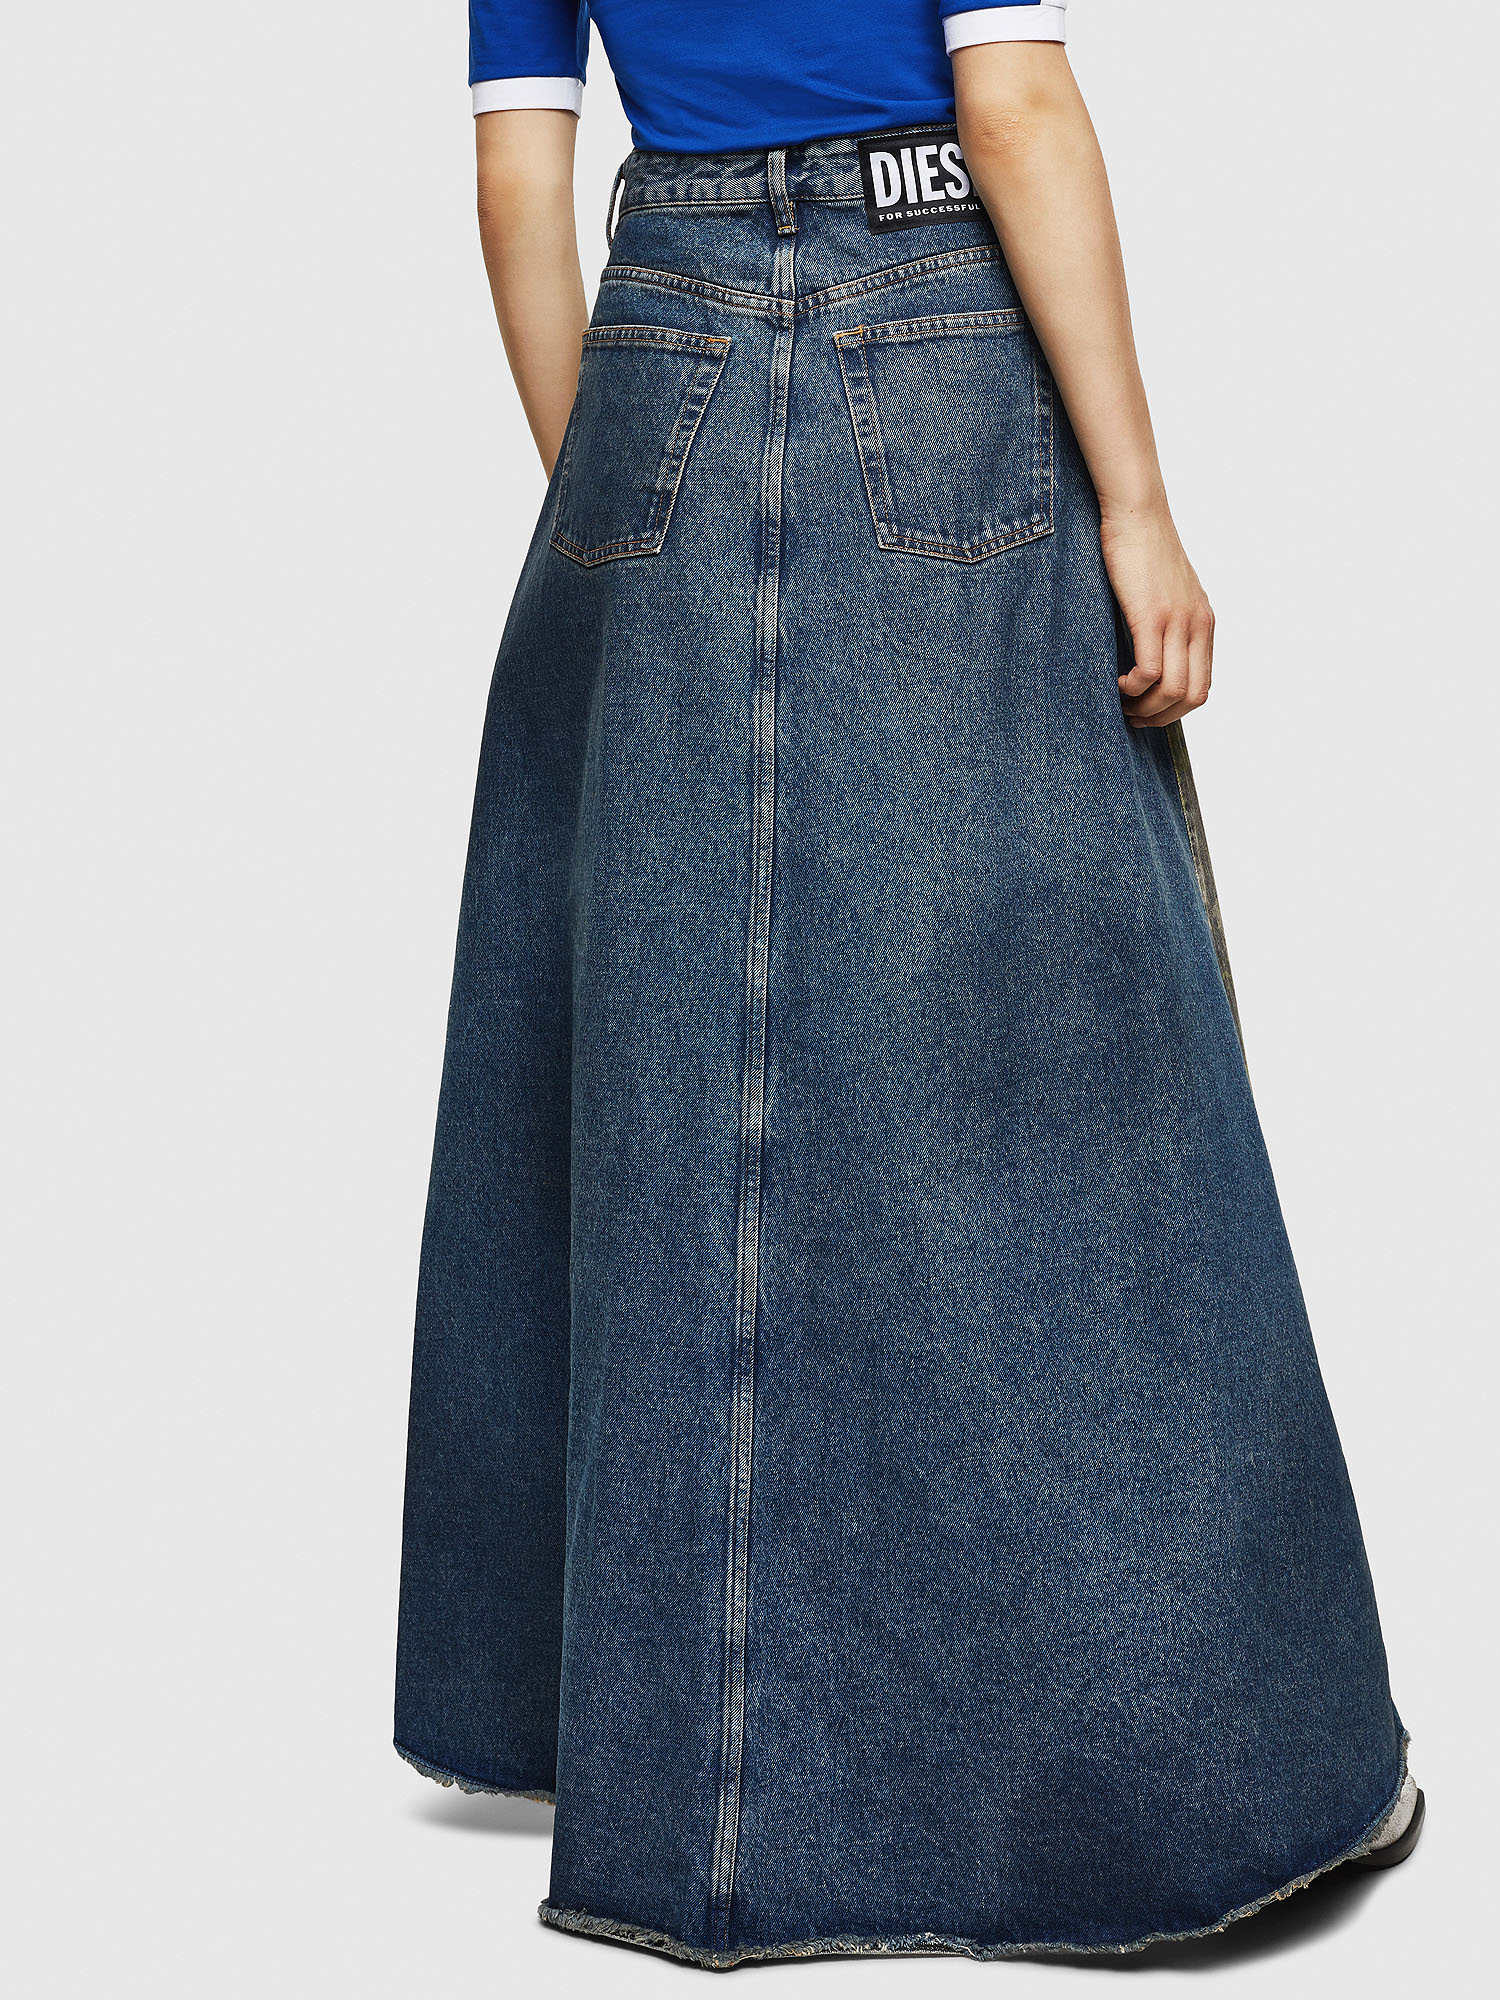 Diesel - DE-SHIRLEY,  - Skirts - Image 2